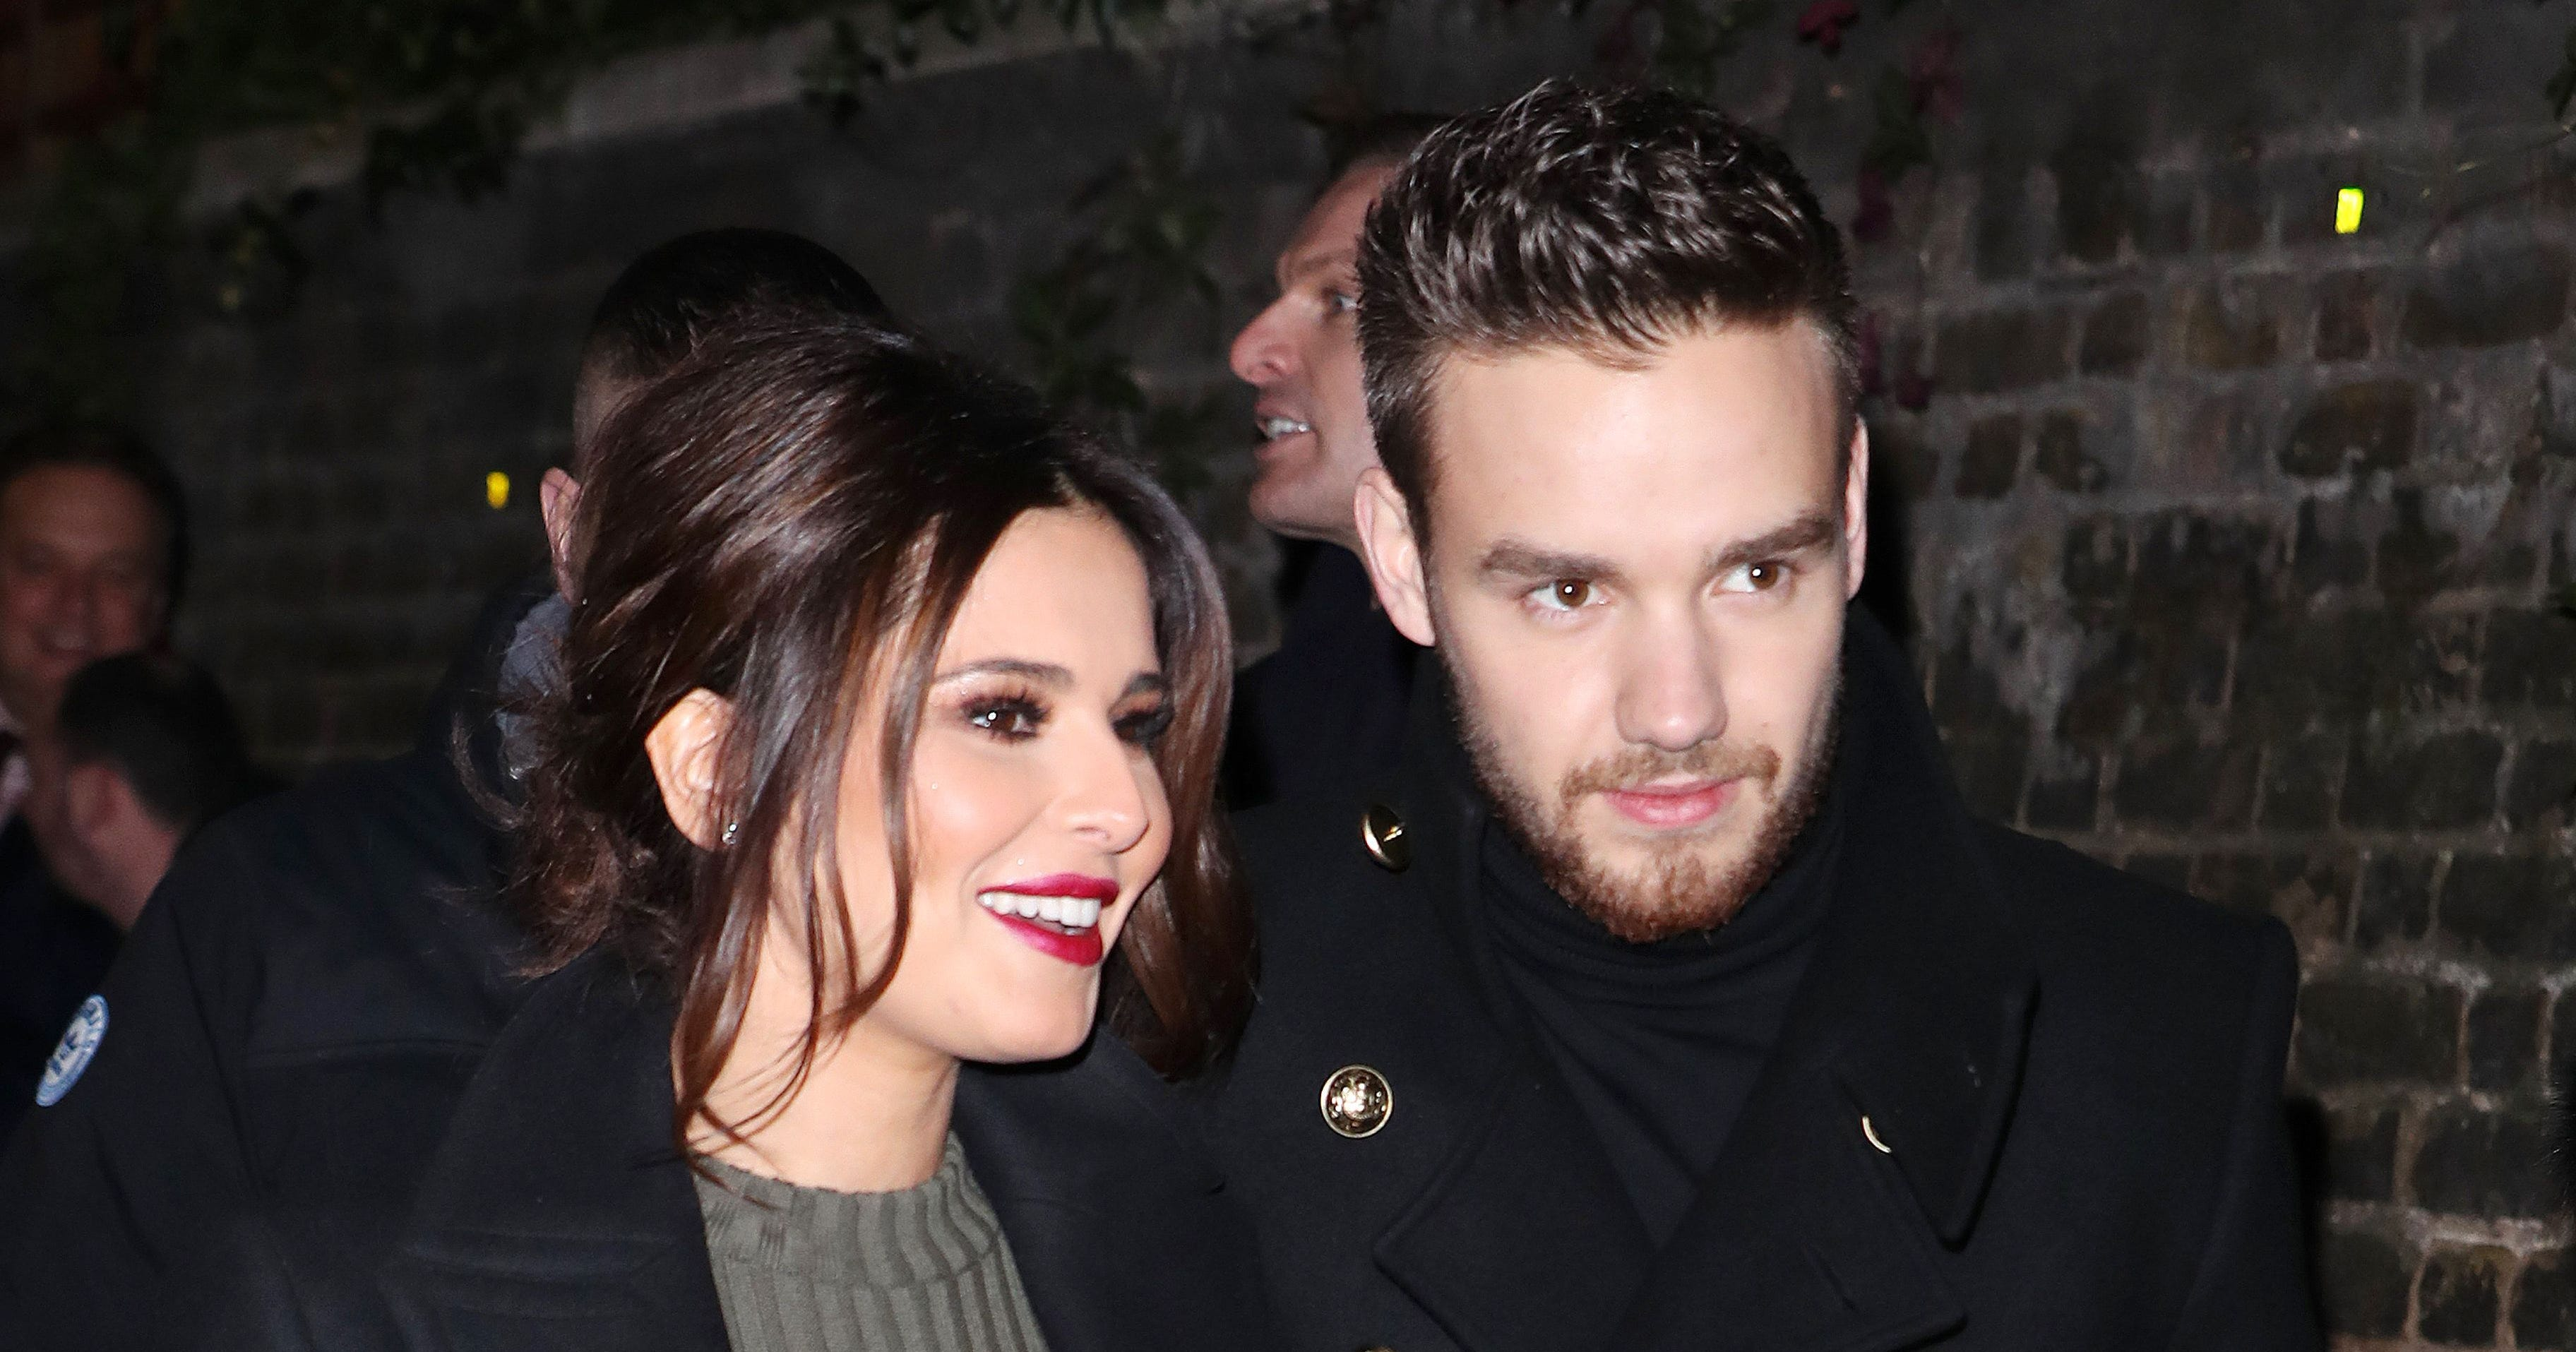 14-Year-Old Liam Payne Meeting His Now GF Cheryl Is Trippy